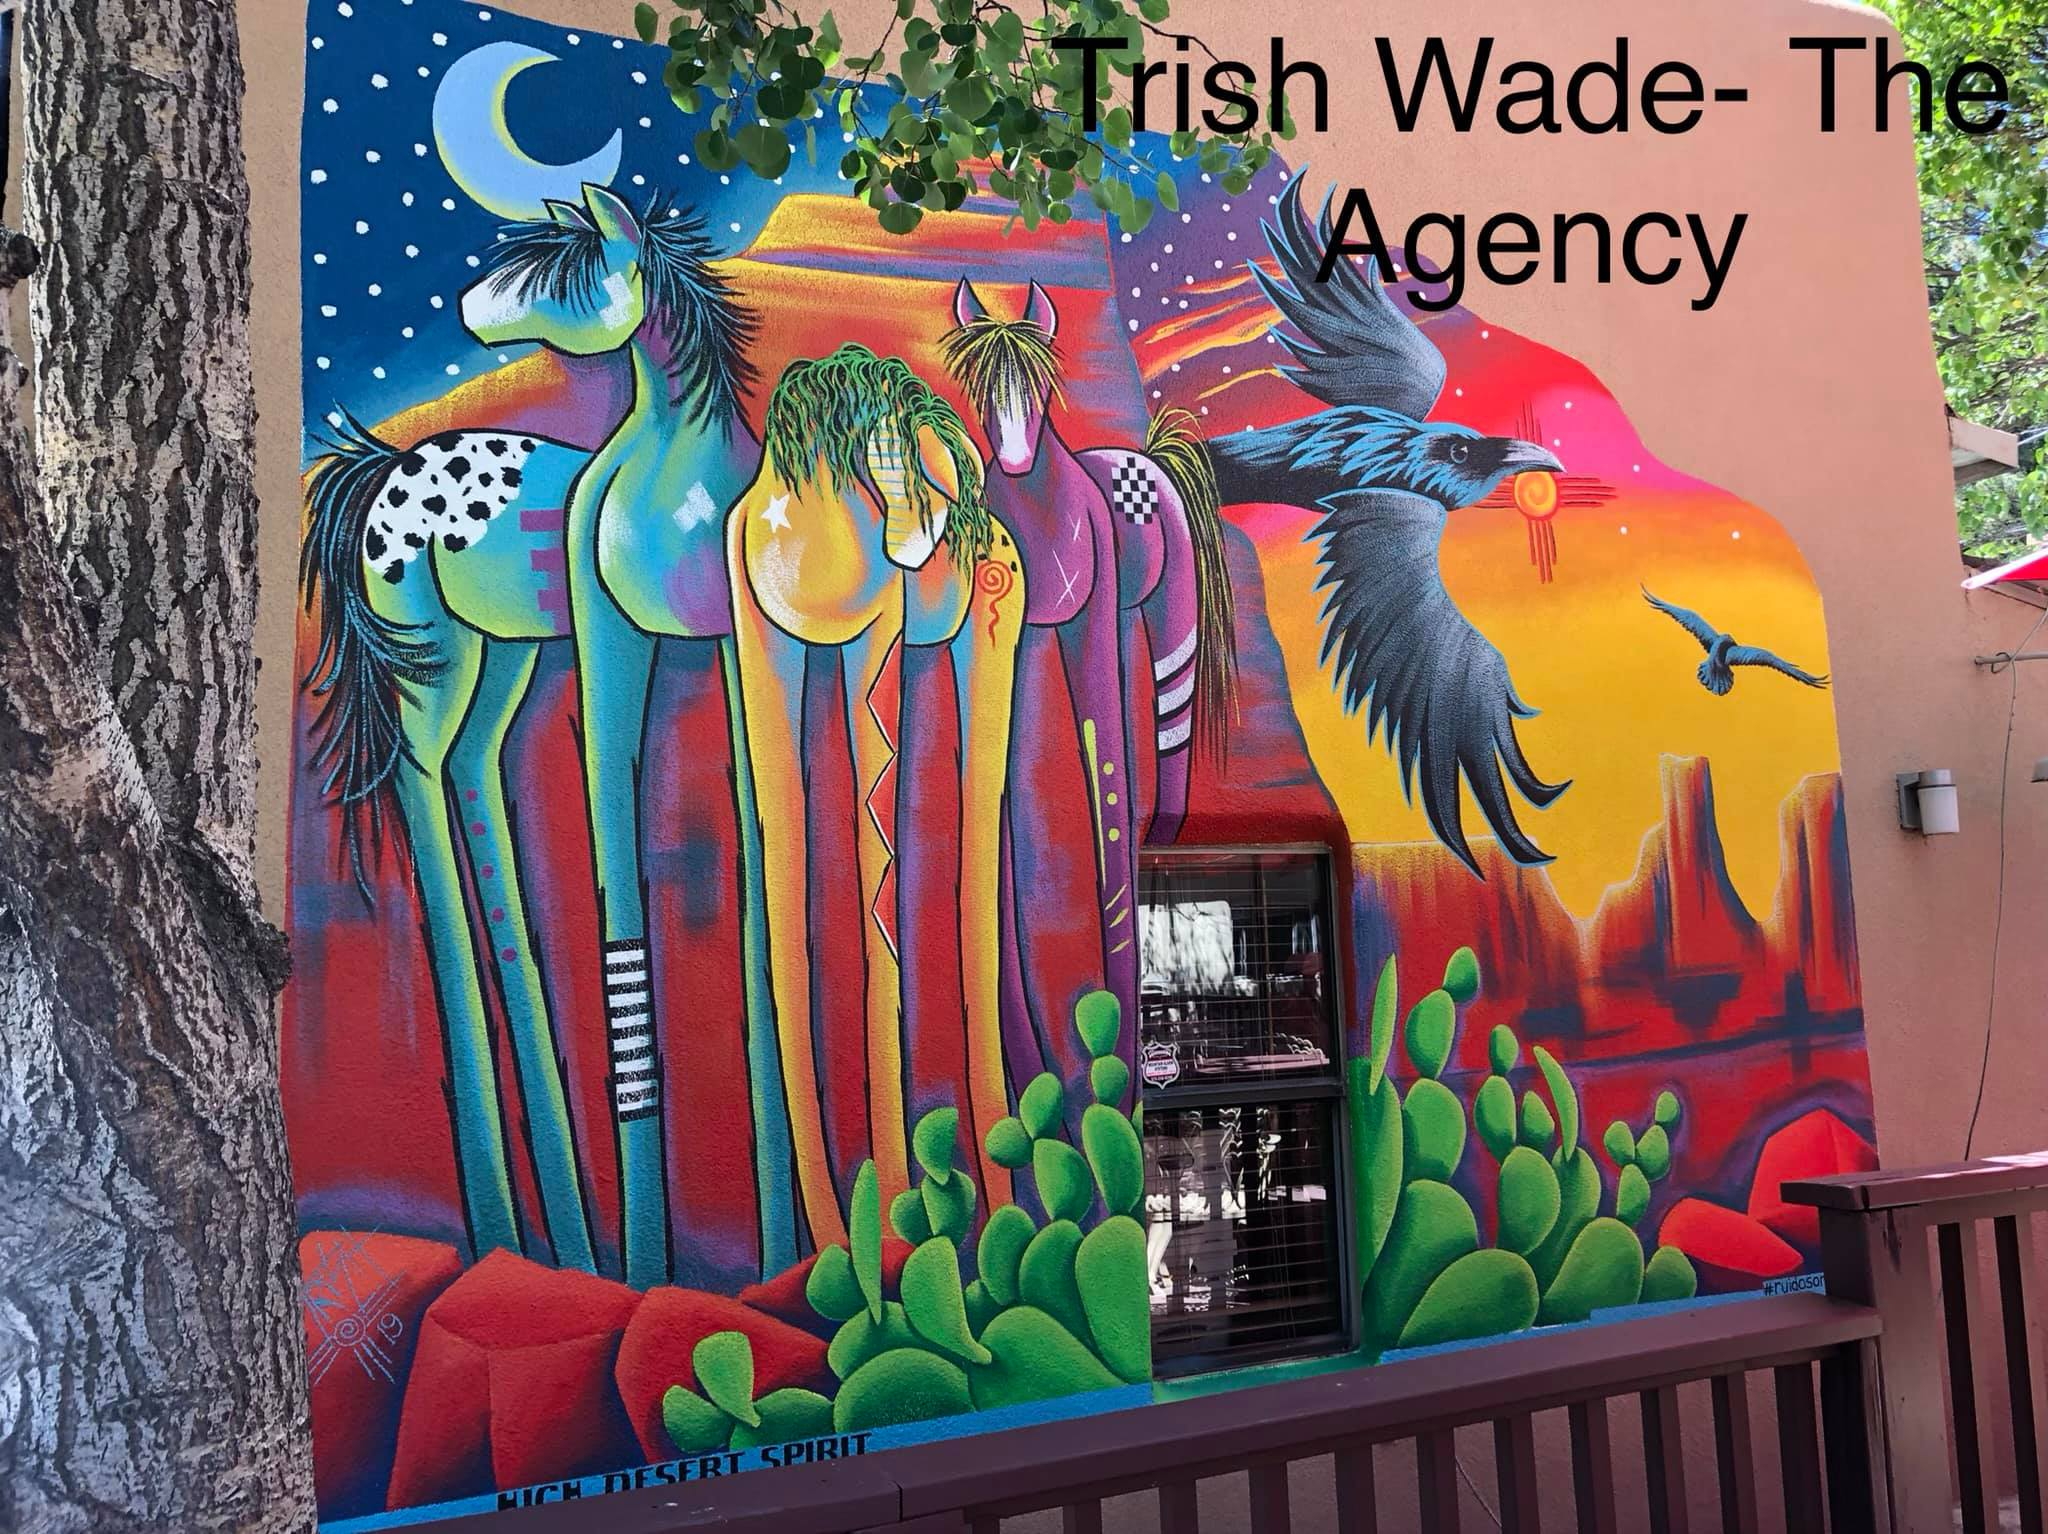 Photo: Mural at The Agency